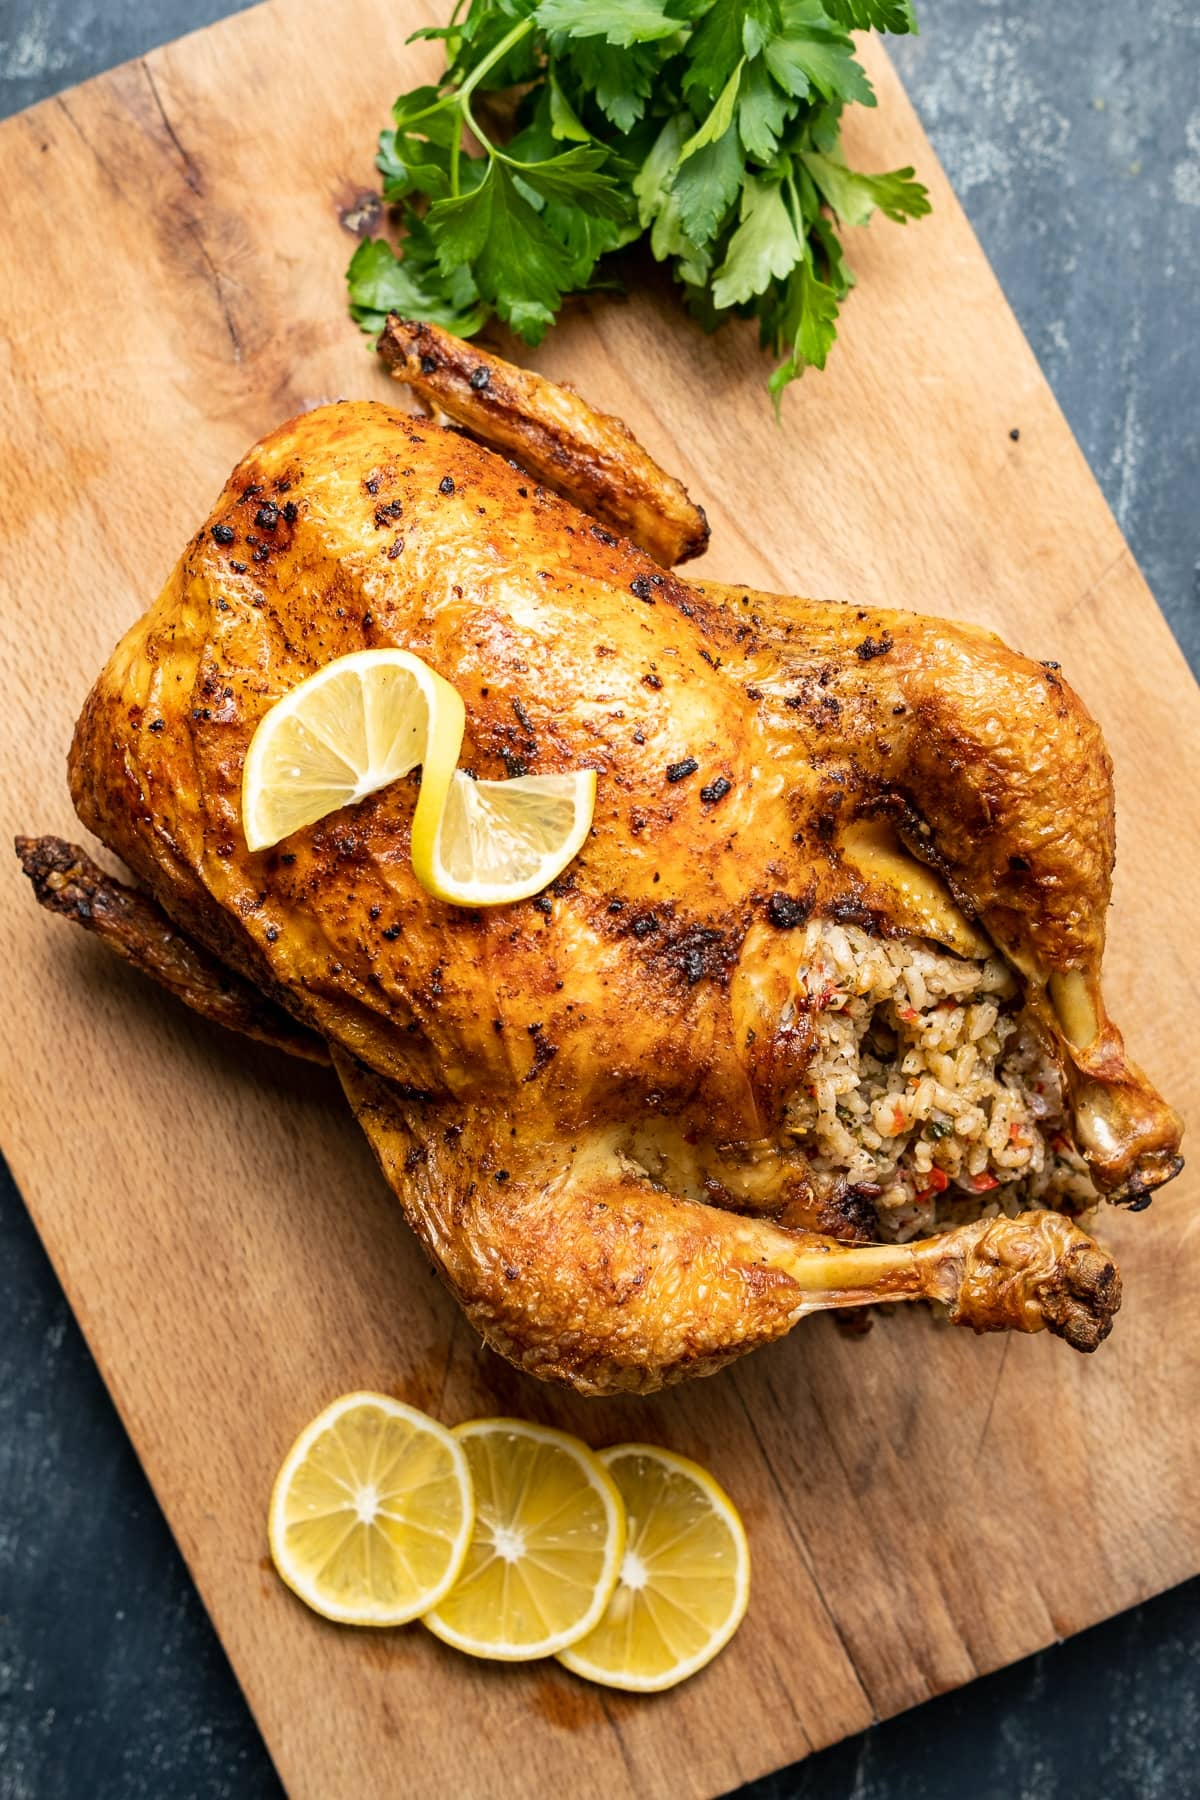 Roasted rice stuffed whole chicken on a wooden cutting board, lemon slices and a bunch of parsley on the side.